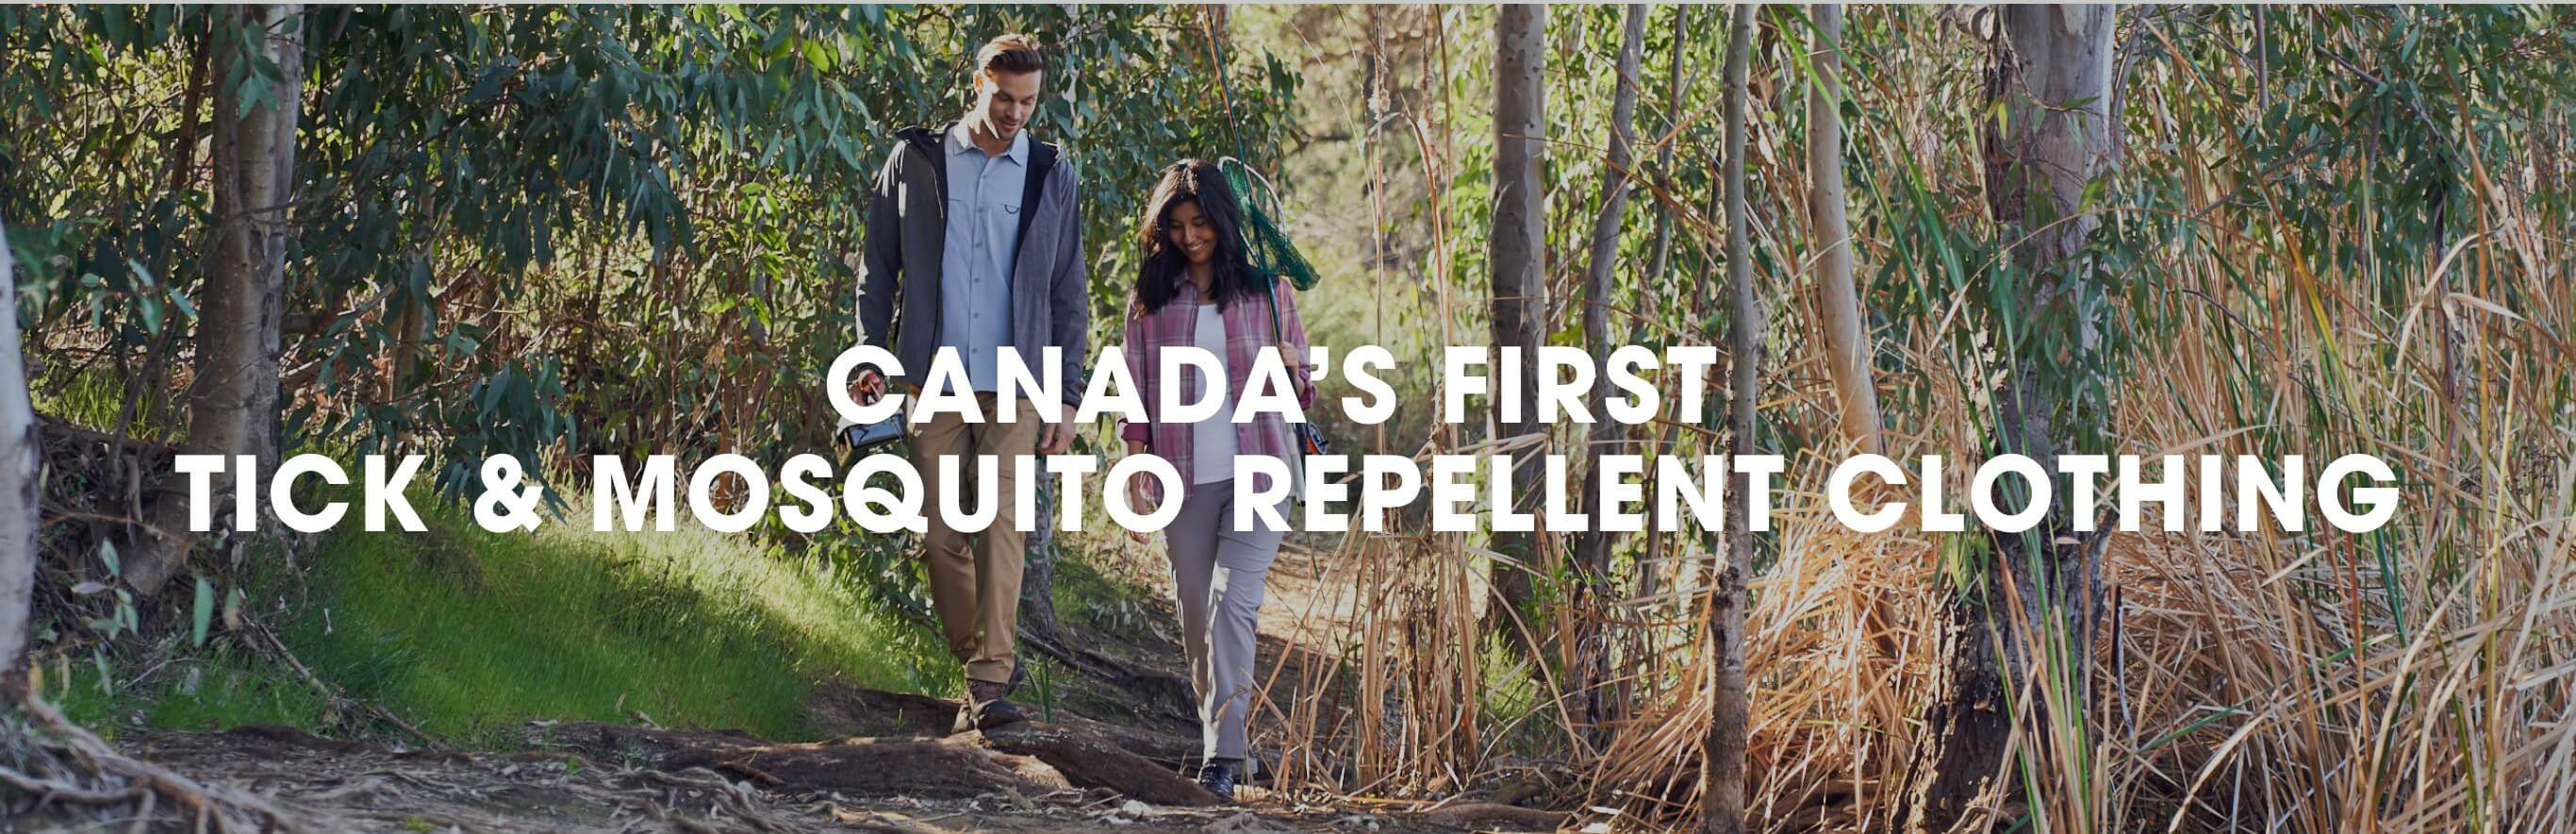 Canada's first mosquito and tick repellent clothing.